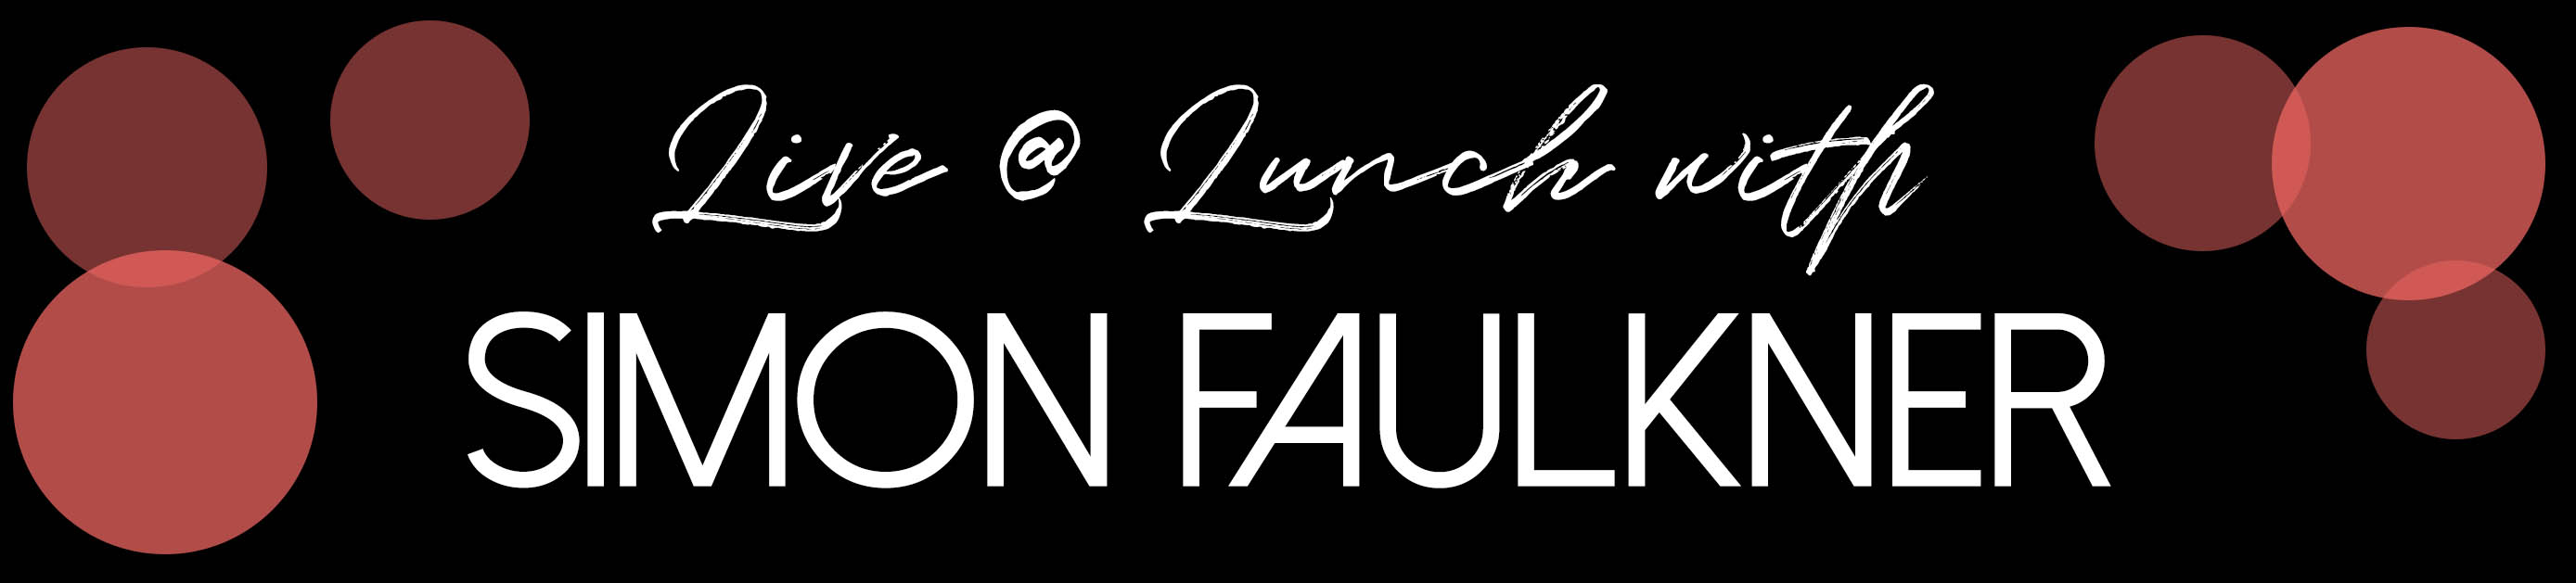 NEW - Christmas 'Live @ Lunch' with Simon Faulkner*